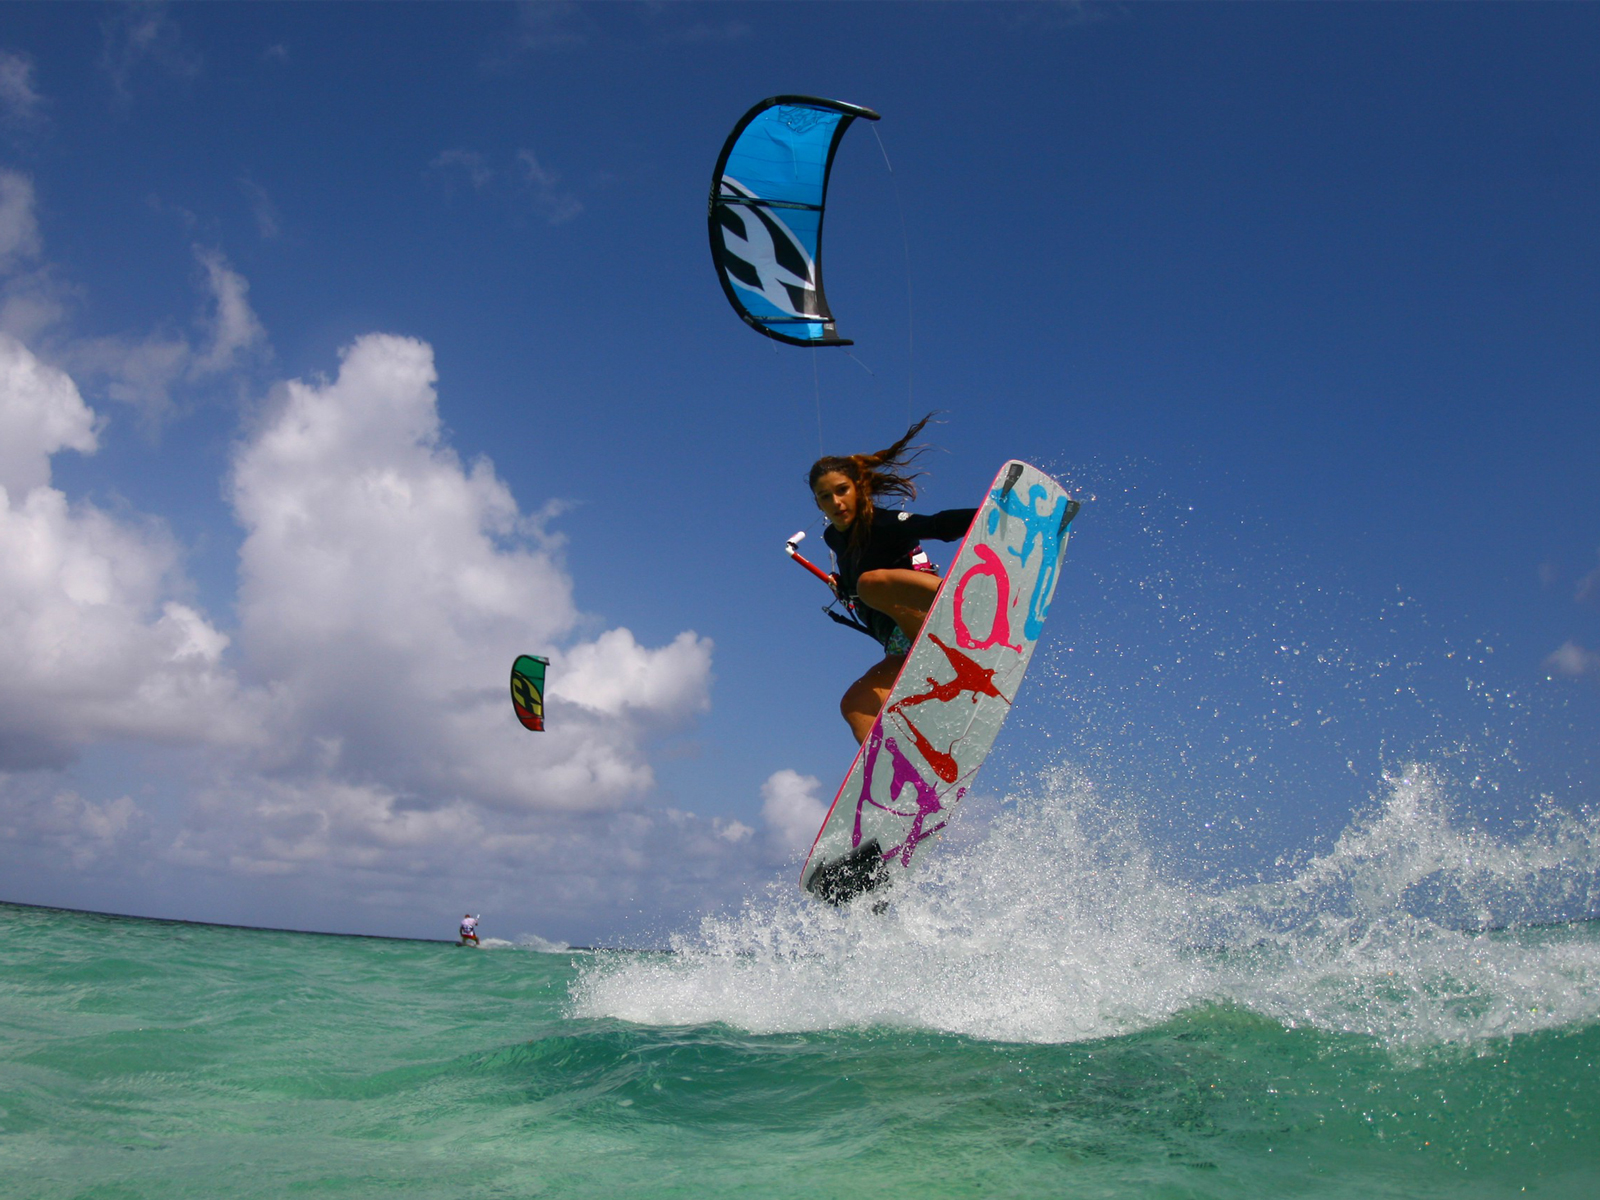 kitesurf wallpaper image - Celine Rodenas backroll with grab kitesurfing - in resolution: Standard 4:3 1600 X 1200